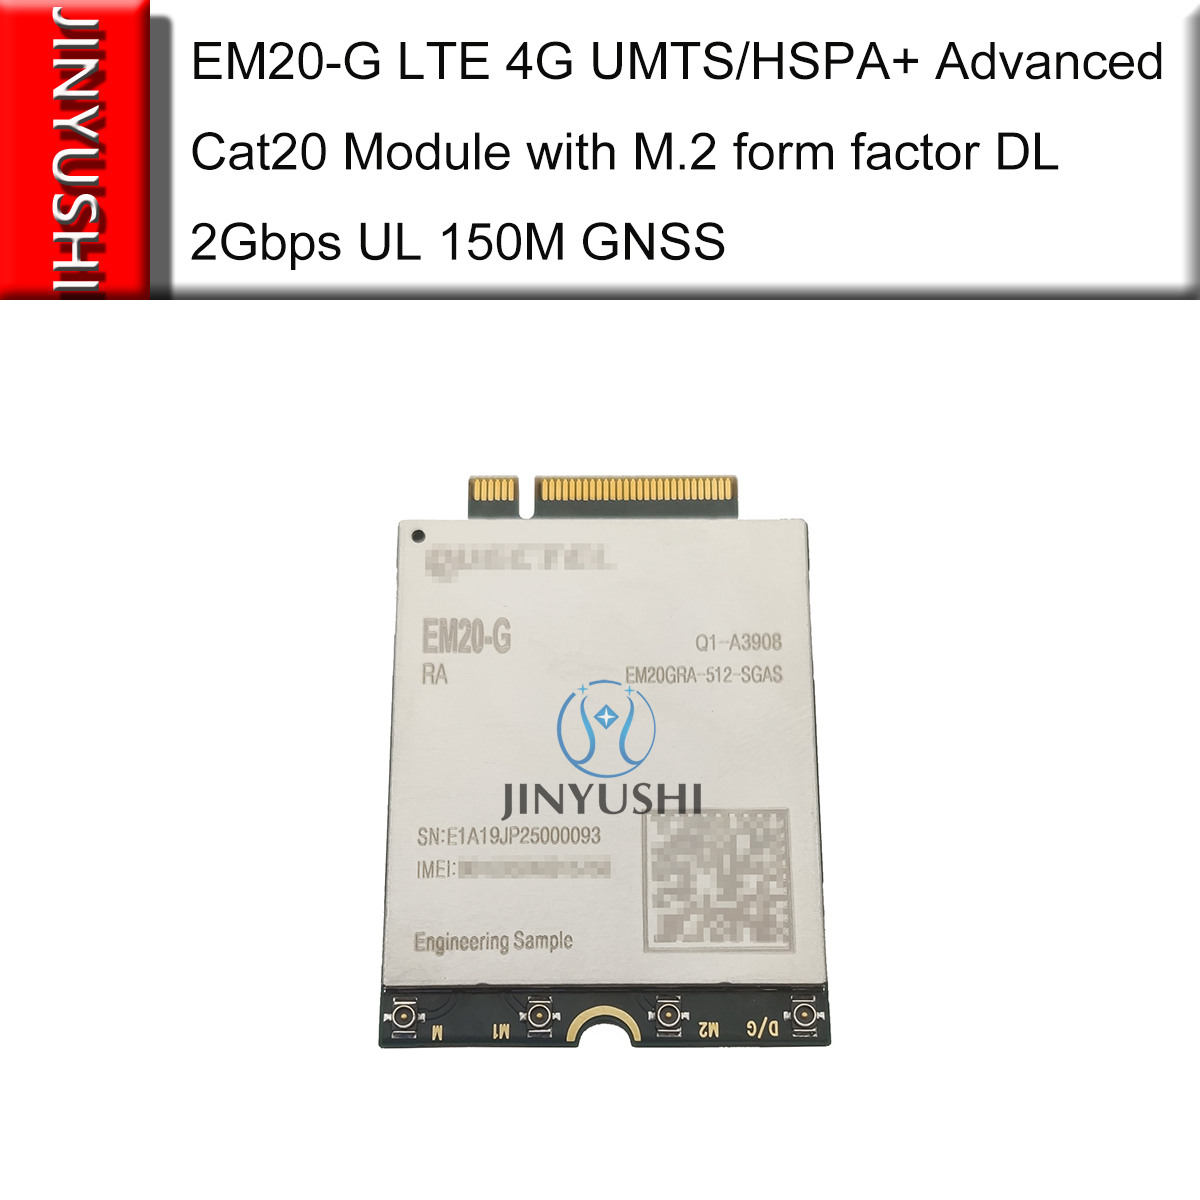 Brand New No Fake! EM20 EM20-G  LTE 4G Advanced Cat20 Module EM20GRA-512-SGAS With M.2 Form Factor  DL 2Gbps UL 150M GNSS